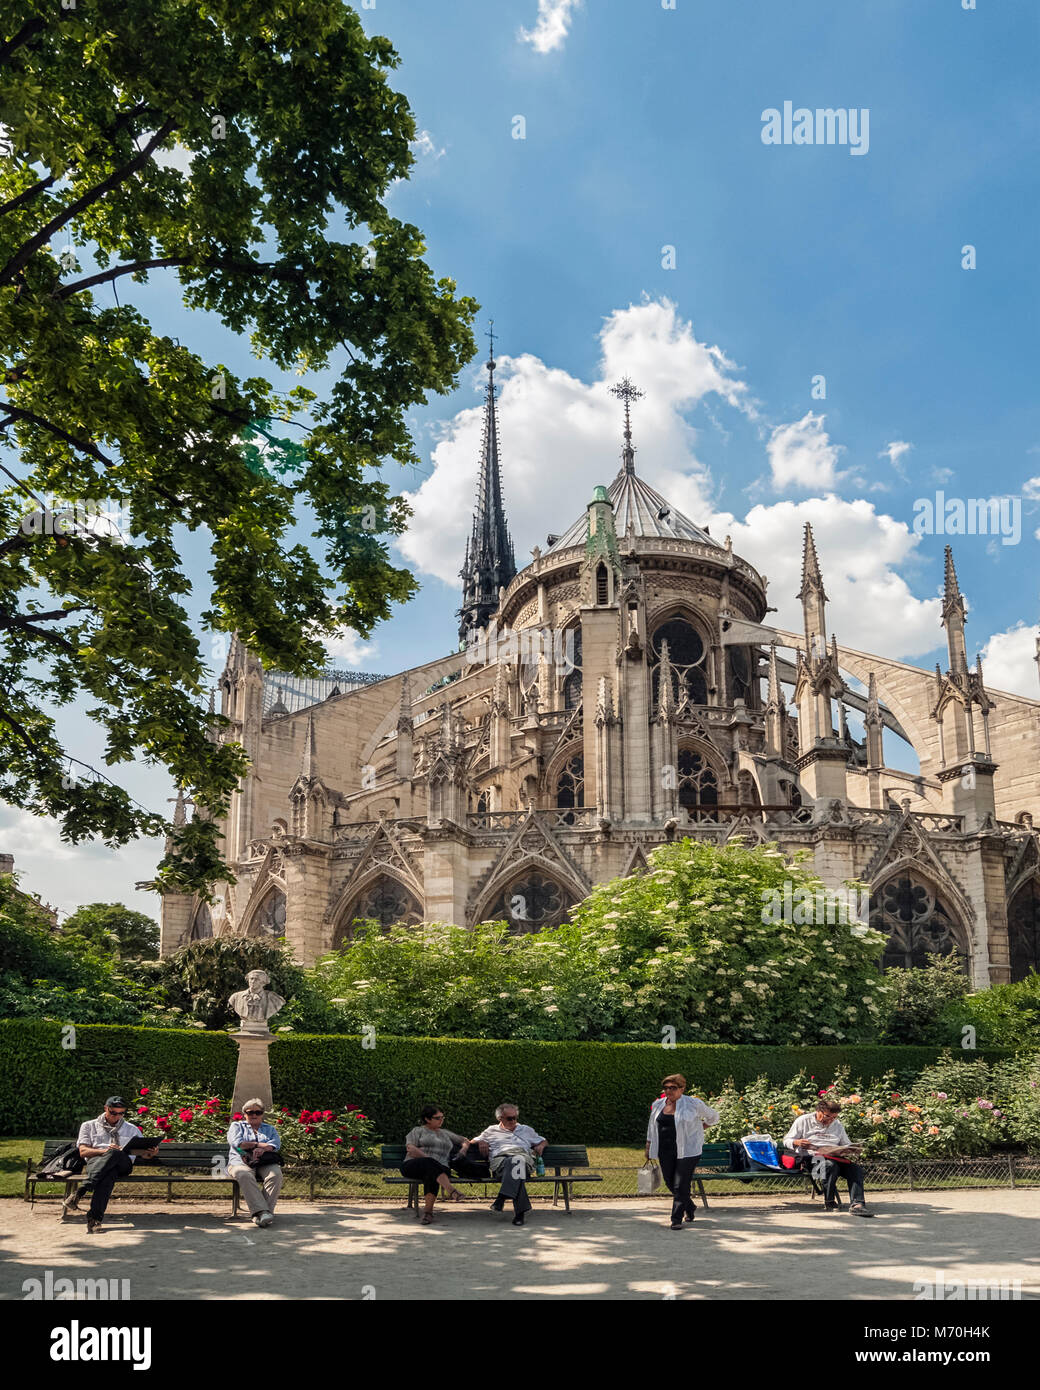 PARIS, FRANCE: Notre-Dame Cathedral on the Ile de la Cite seen from the Jean XXIII Garden - Stock Image